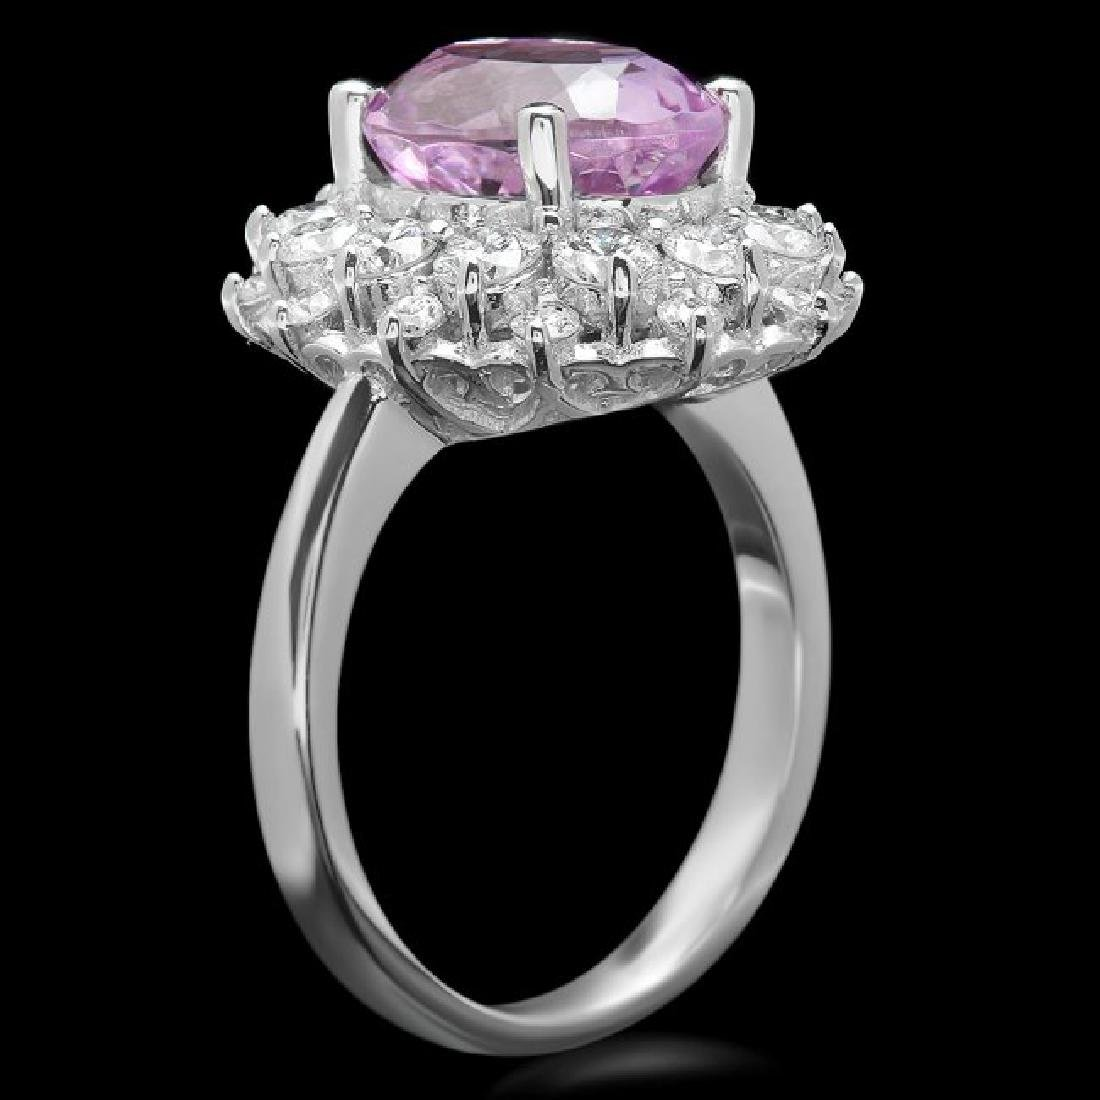 14k White Gold 4.50ct Kunzite 1.60ct Diamond Ring - 2